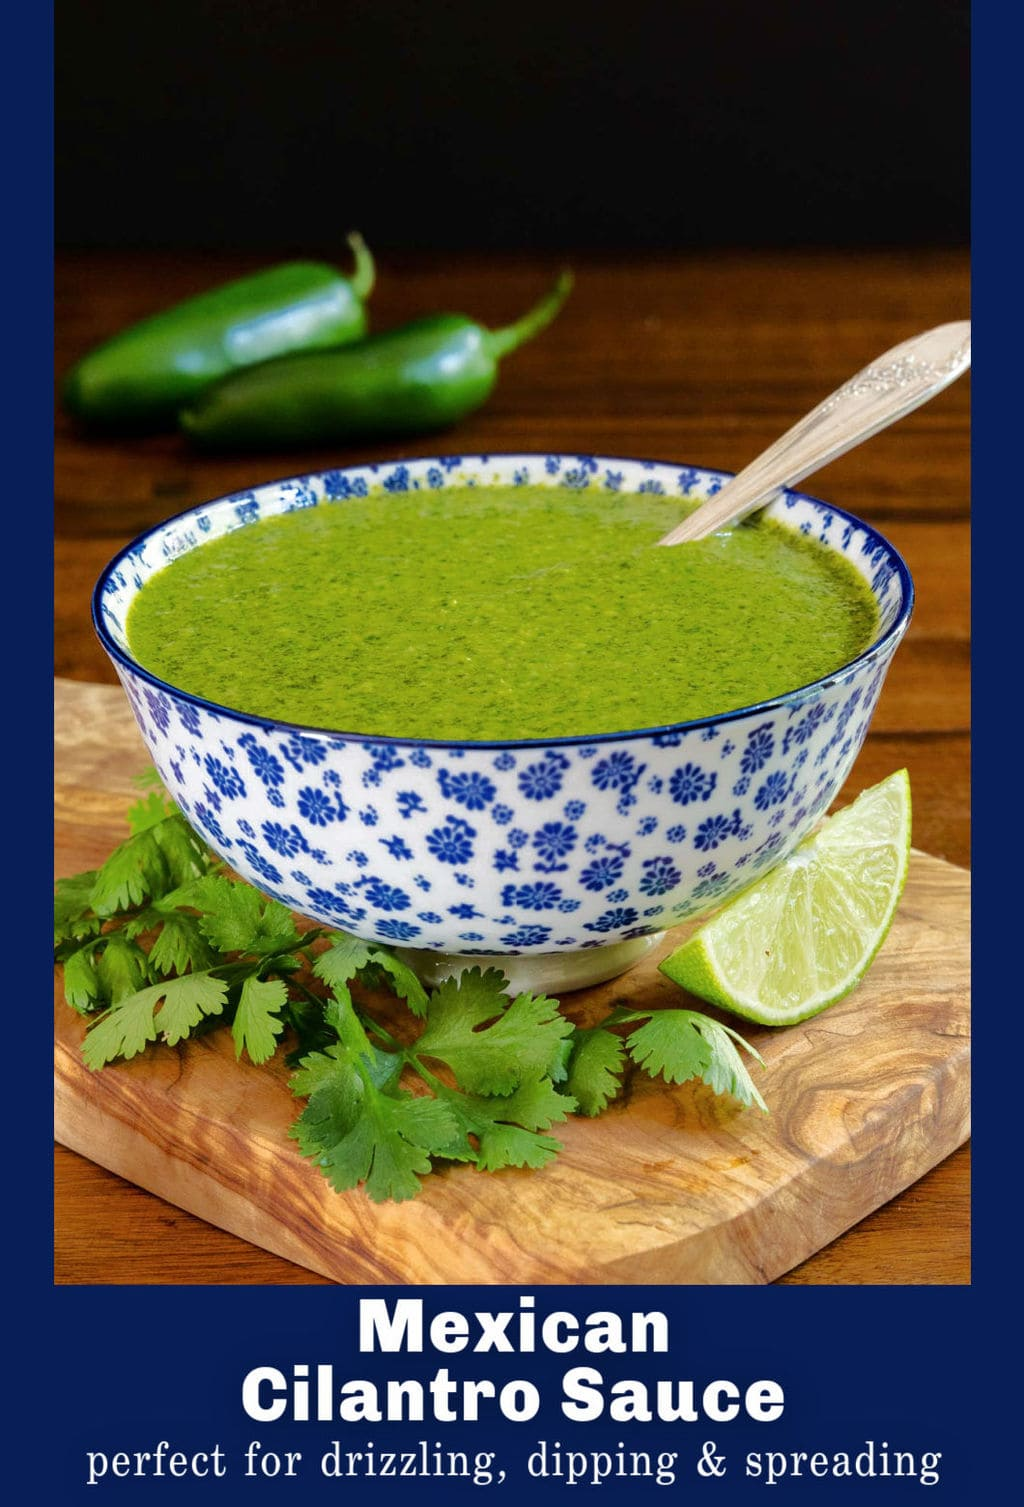 Mexican Cilantro Sauce (perfect for drizzling, dipping and spreading!)